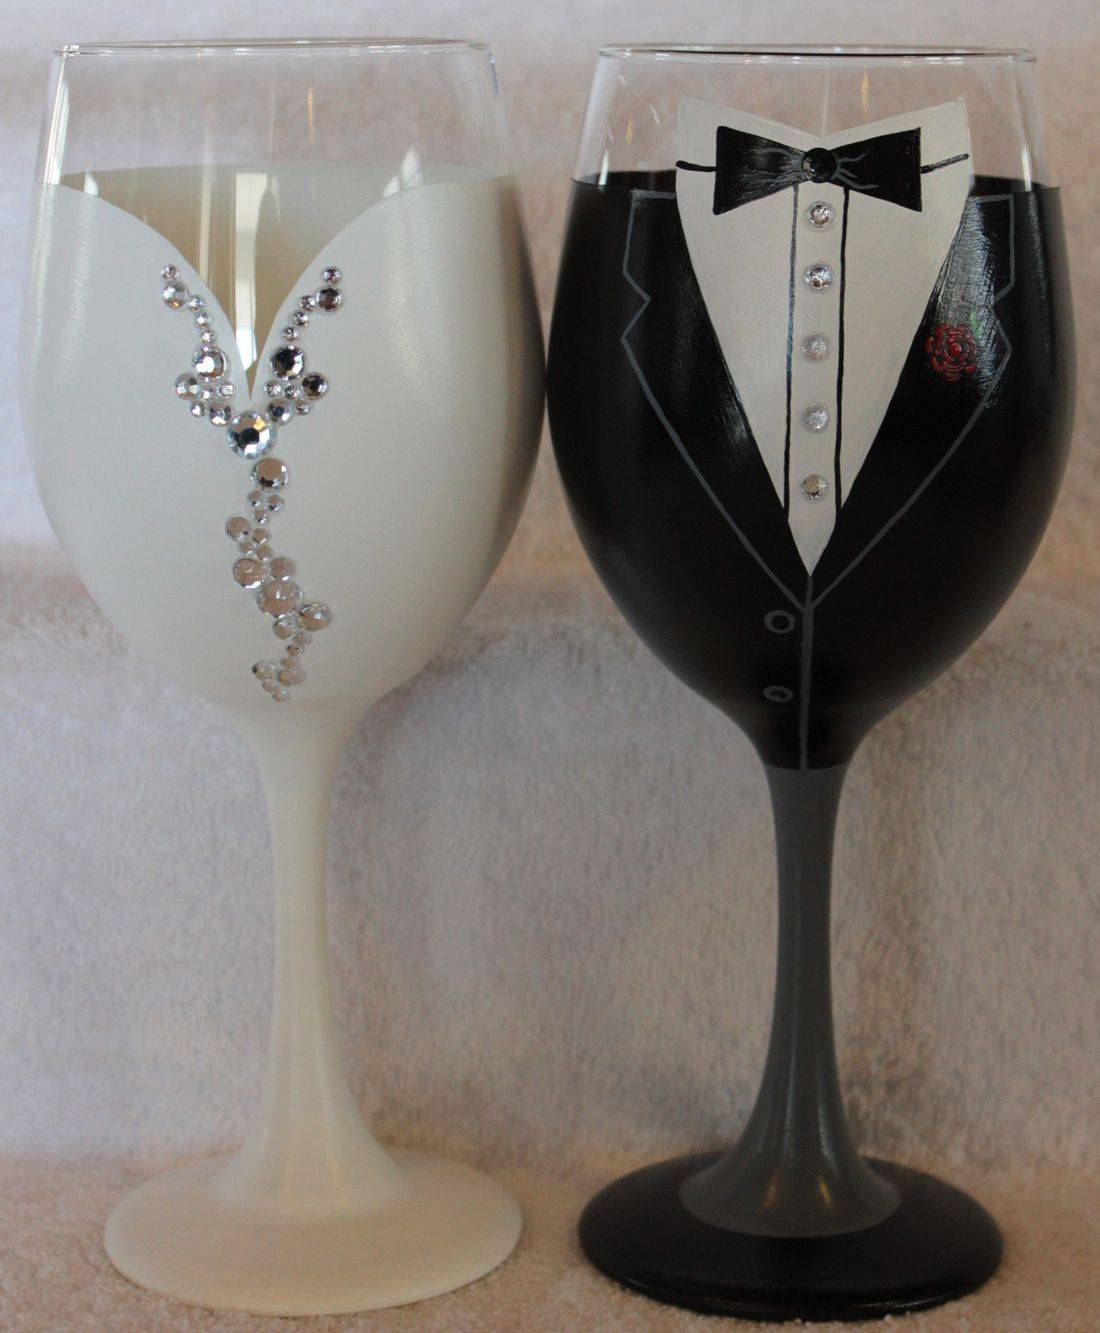 wedding wine glasses, bride wine glass, groom wine glass, bride and groom wine glass